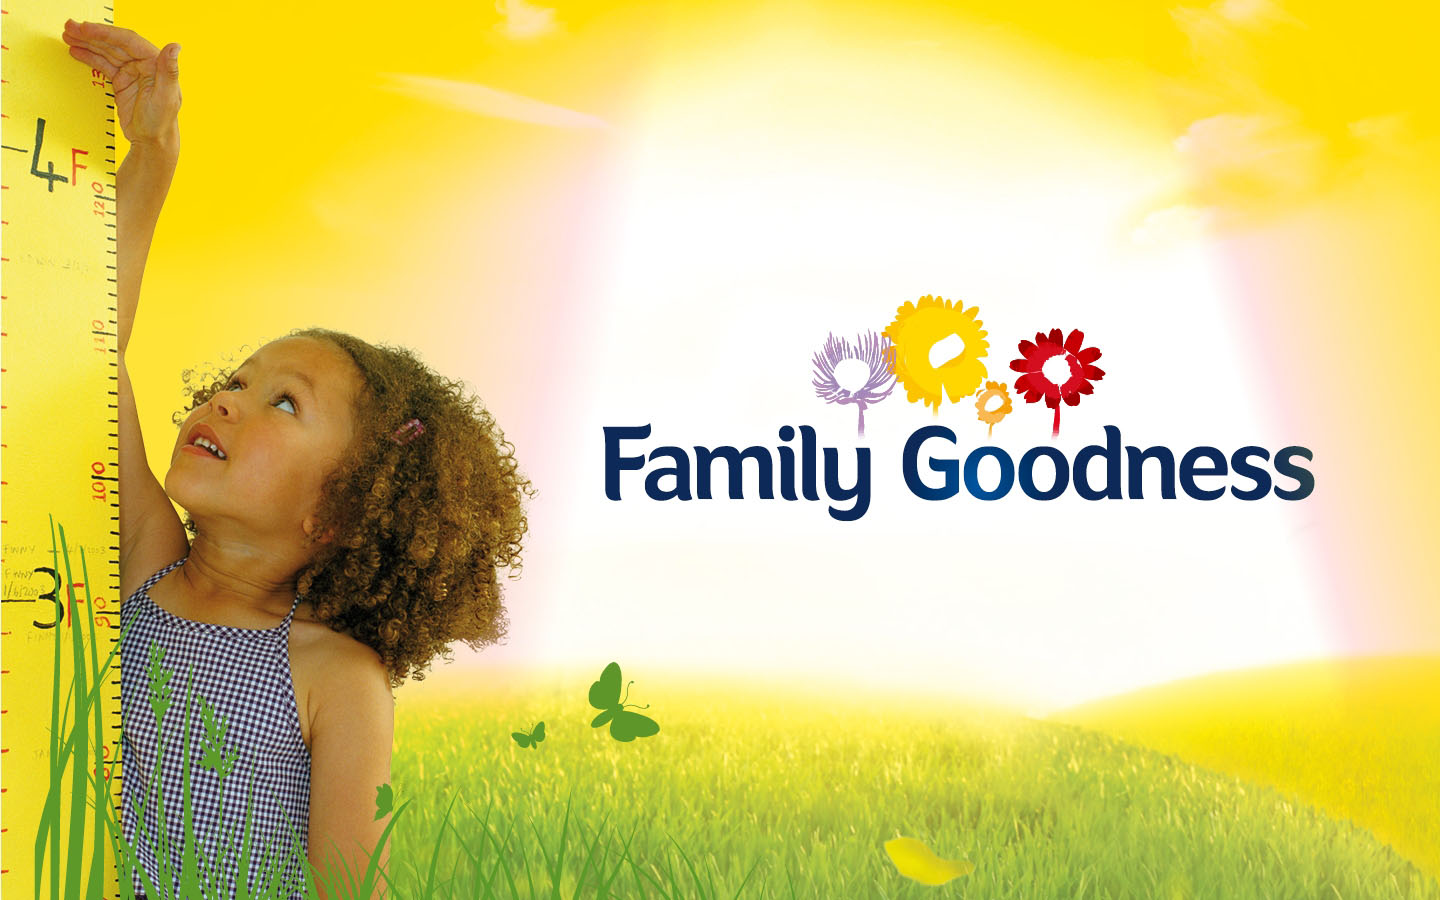 Family Goodness - Brand Vision Plan - handout